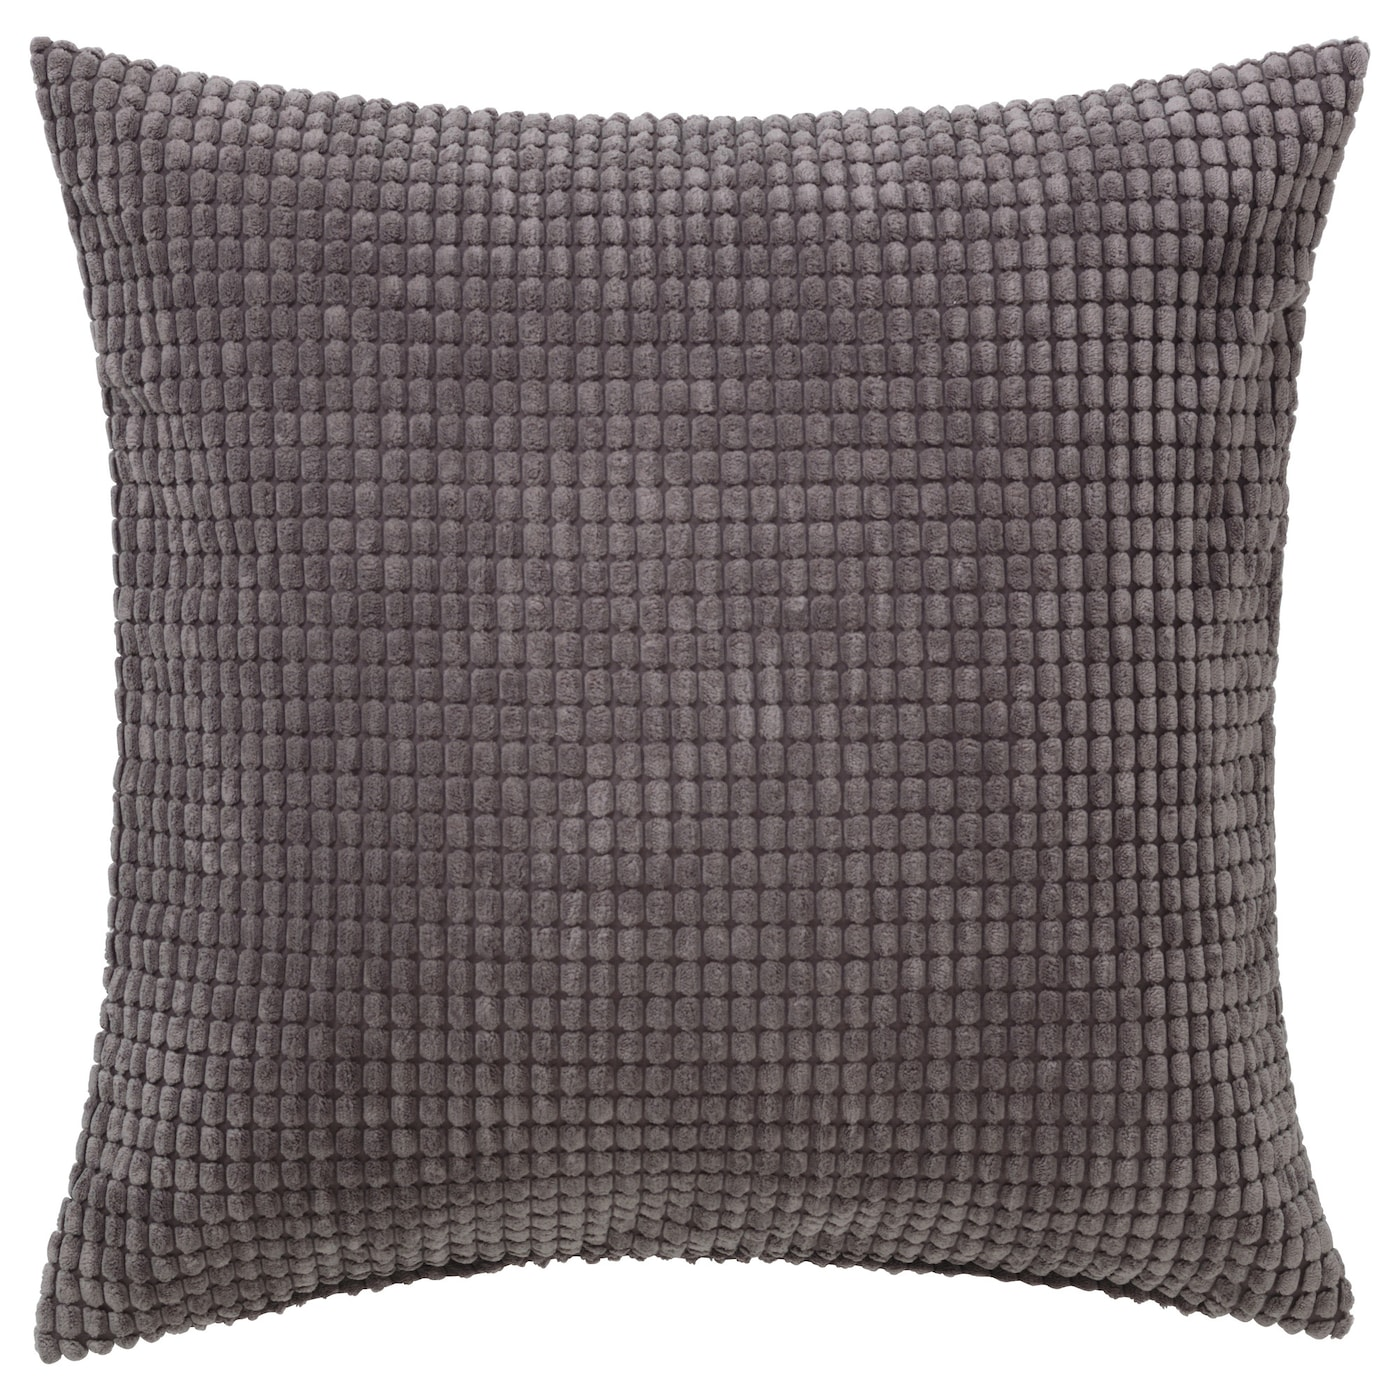 Cushion Covers & Large Cushion Covers | IKEA